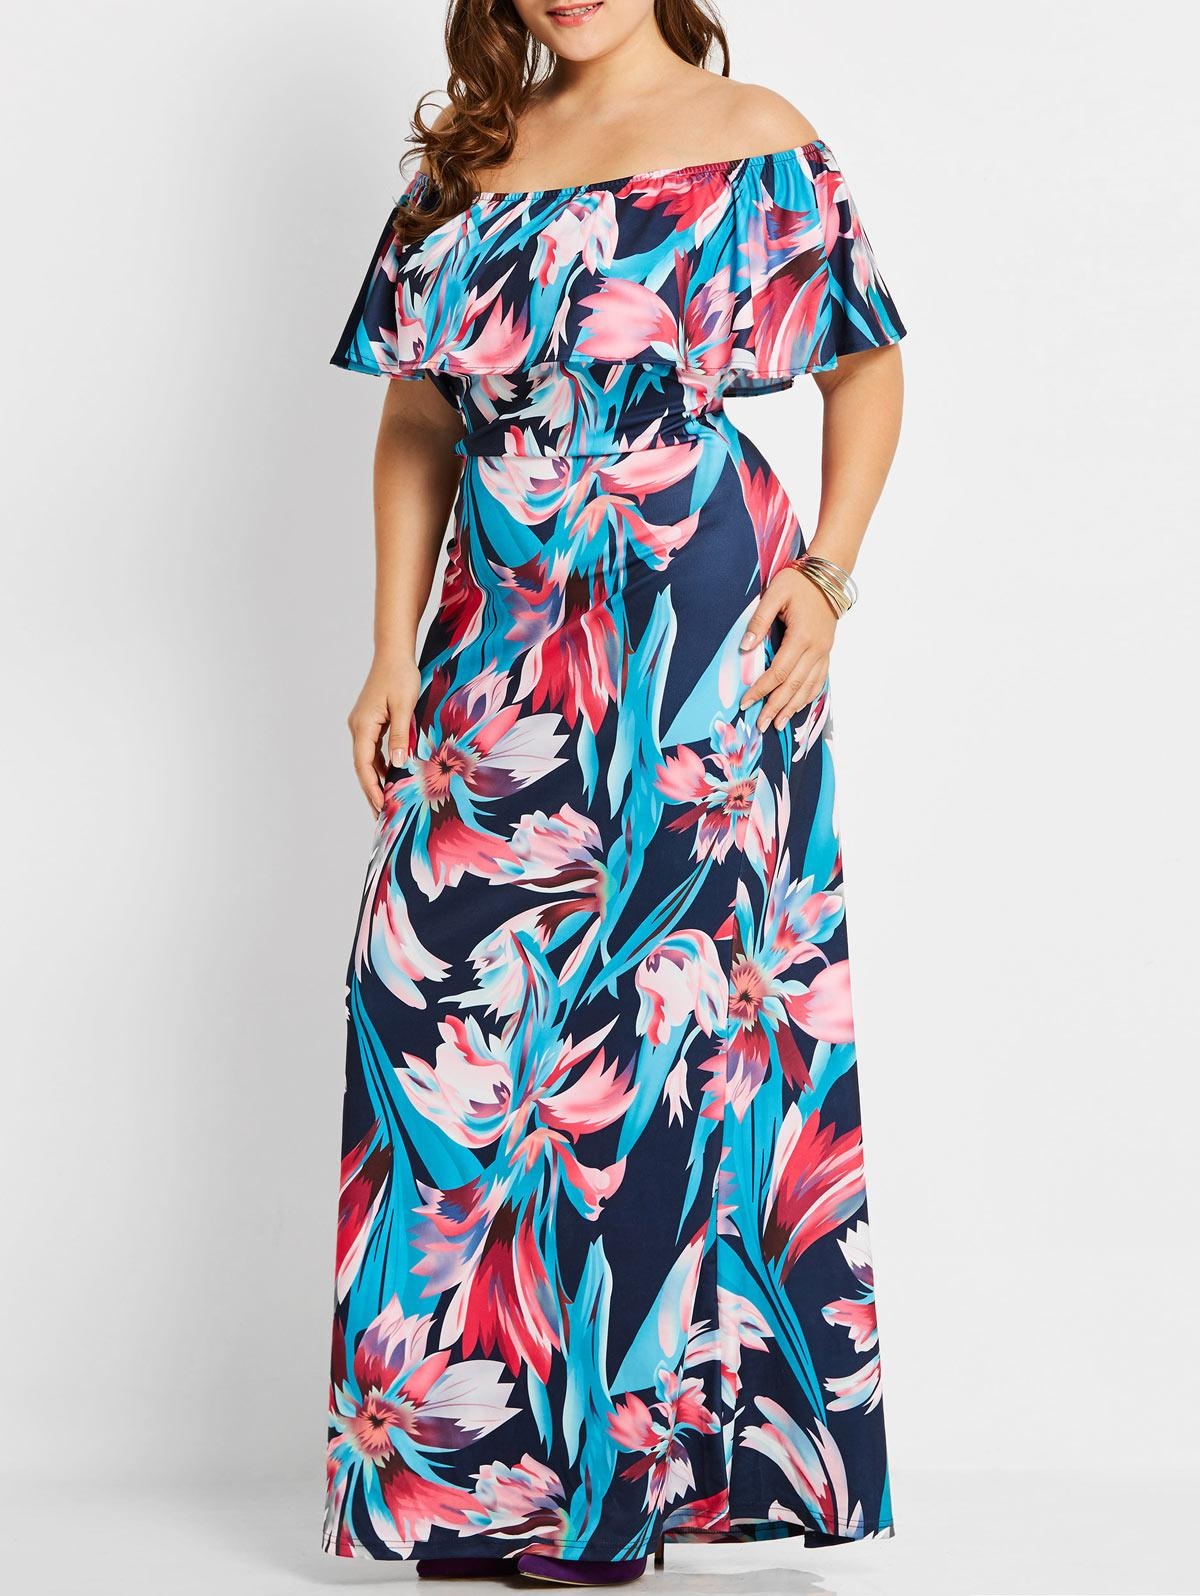 fd935ac8e3e 2019 ZAFUL Women Plus Size Floral Maxi Long Dress Tropical Off Shoulder  Short Sleeves Ruffles Dresses Casual Summer Dress Vestidos From Edmund02